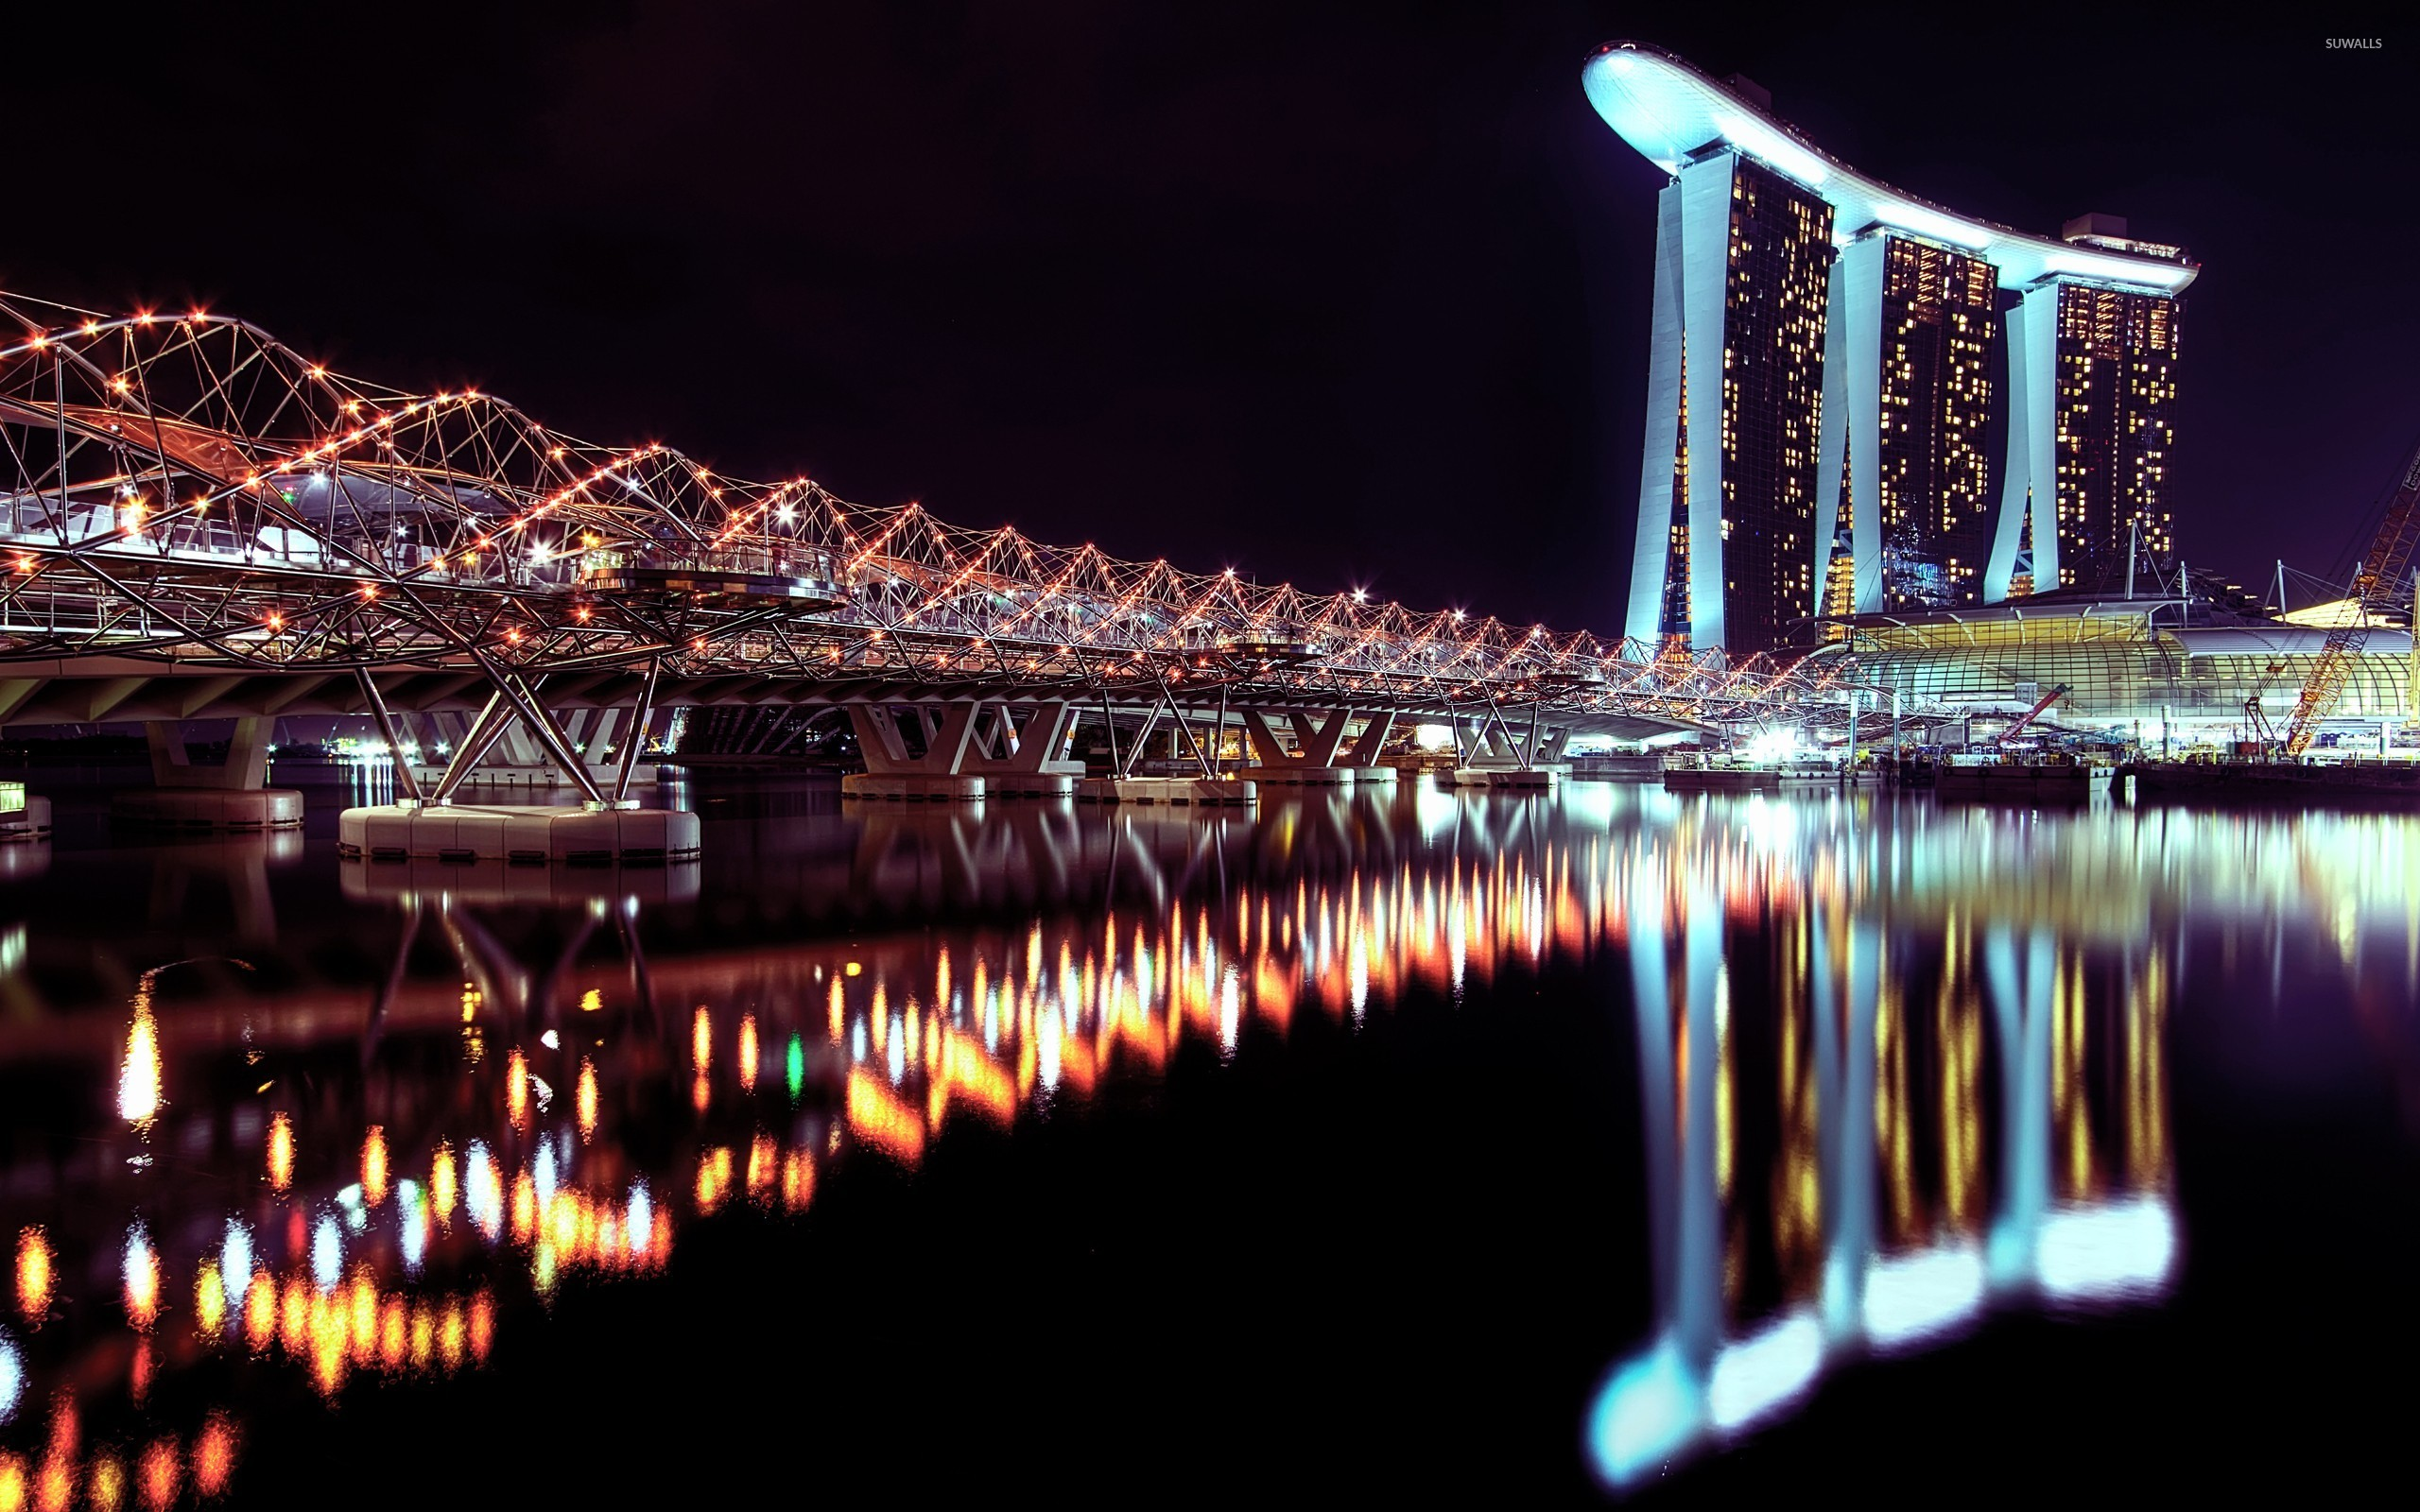 Marina bay singapore wallpaper wallpapersafari for 3d wallpaper for home singapore